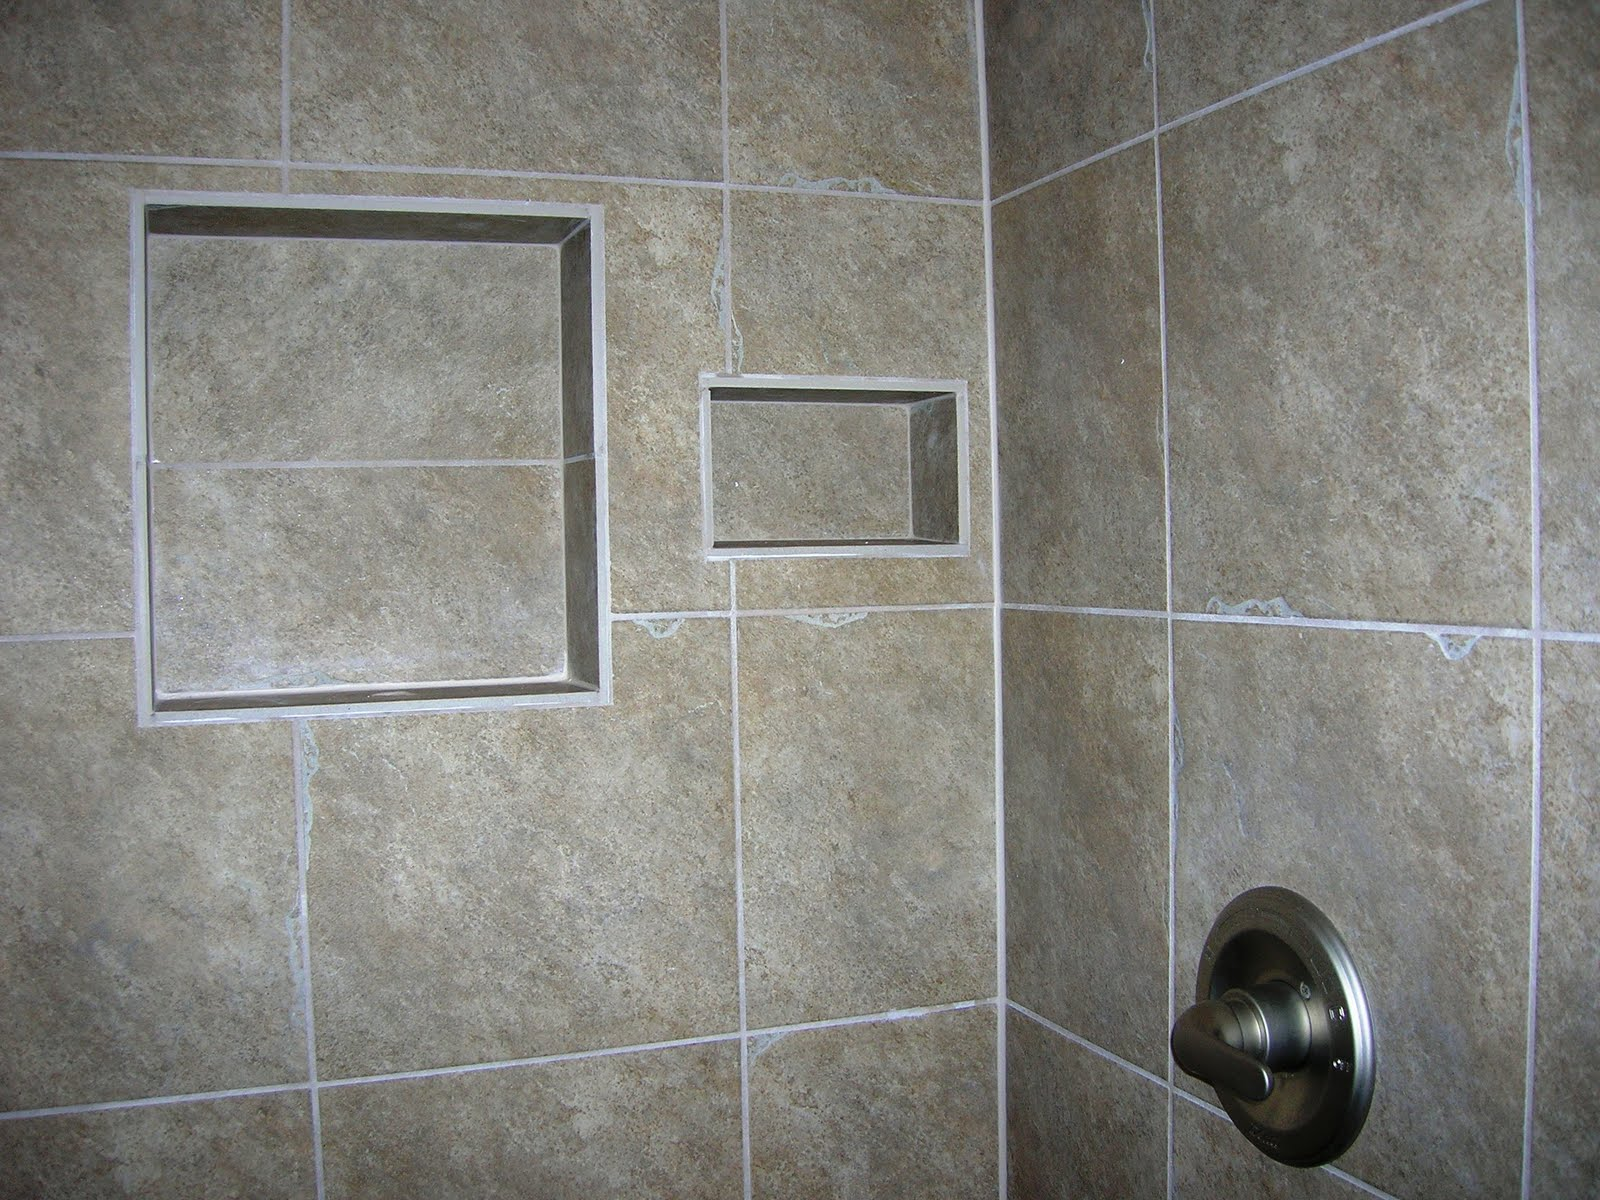 Bathroom Floor Ceramic Tile Design Ideas ~ Nice pictures and ideas of modern bathroom wall tile